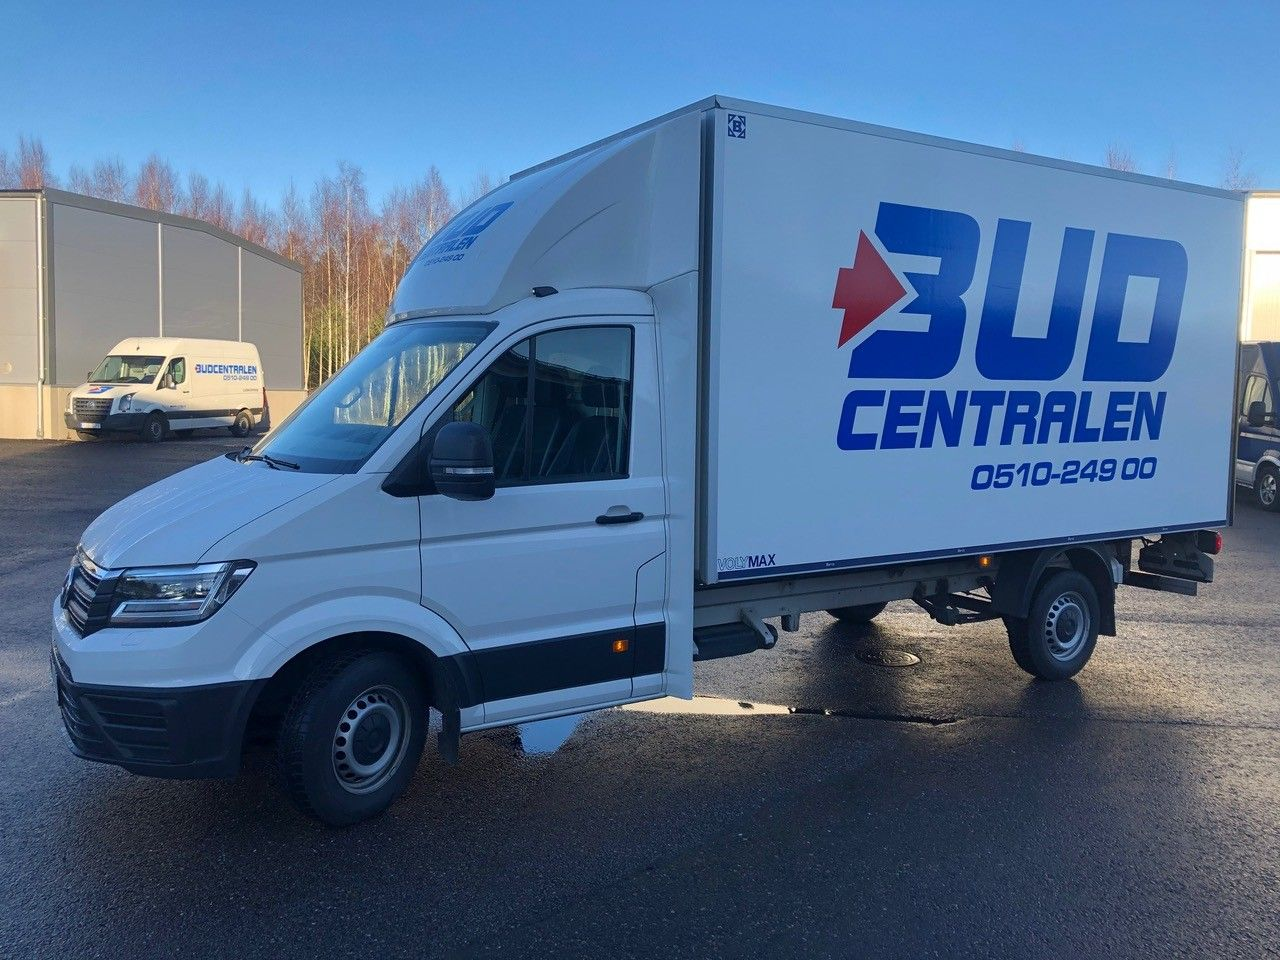 VW Crafter 19